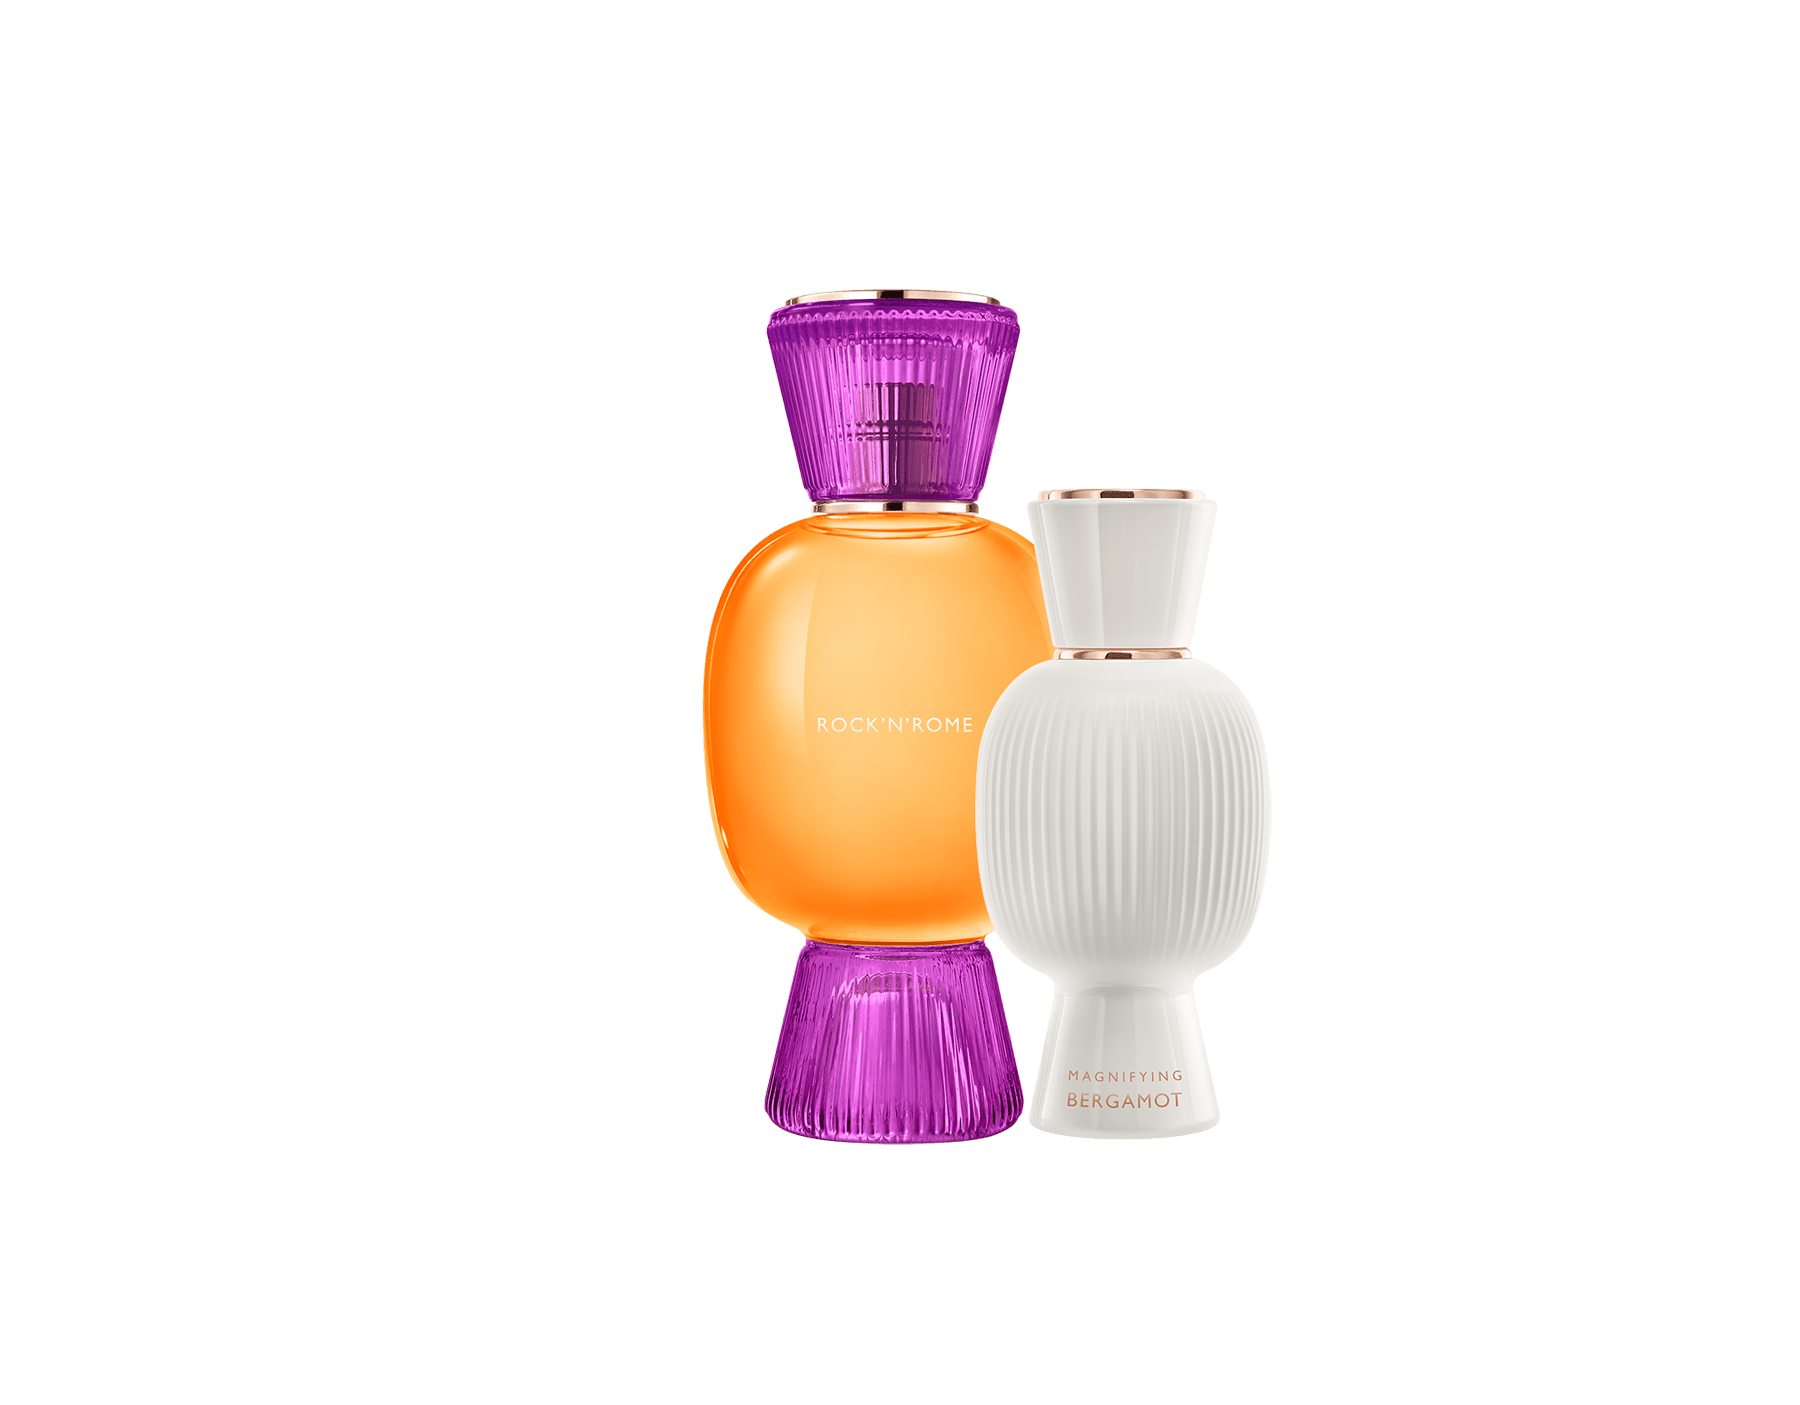 An exclusive perfume set, as bold and unique as you. The liquorous floriental Rock'n'Rome Allegra Eau de Parfum blends with the joyful freshness of the Magnifying Bergamot Essence, creating an irresistible personalised women's perfume. Perfume-Set-Rock-n-Rome-Eau-de-Parfum-and-Bergamot-Magnifying image 1